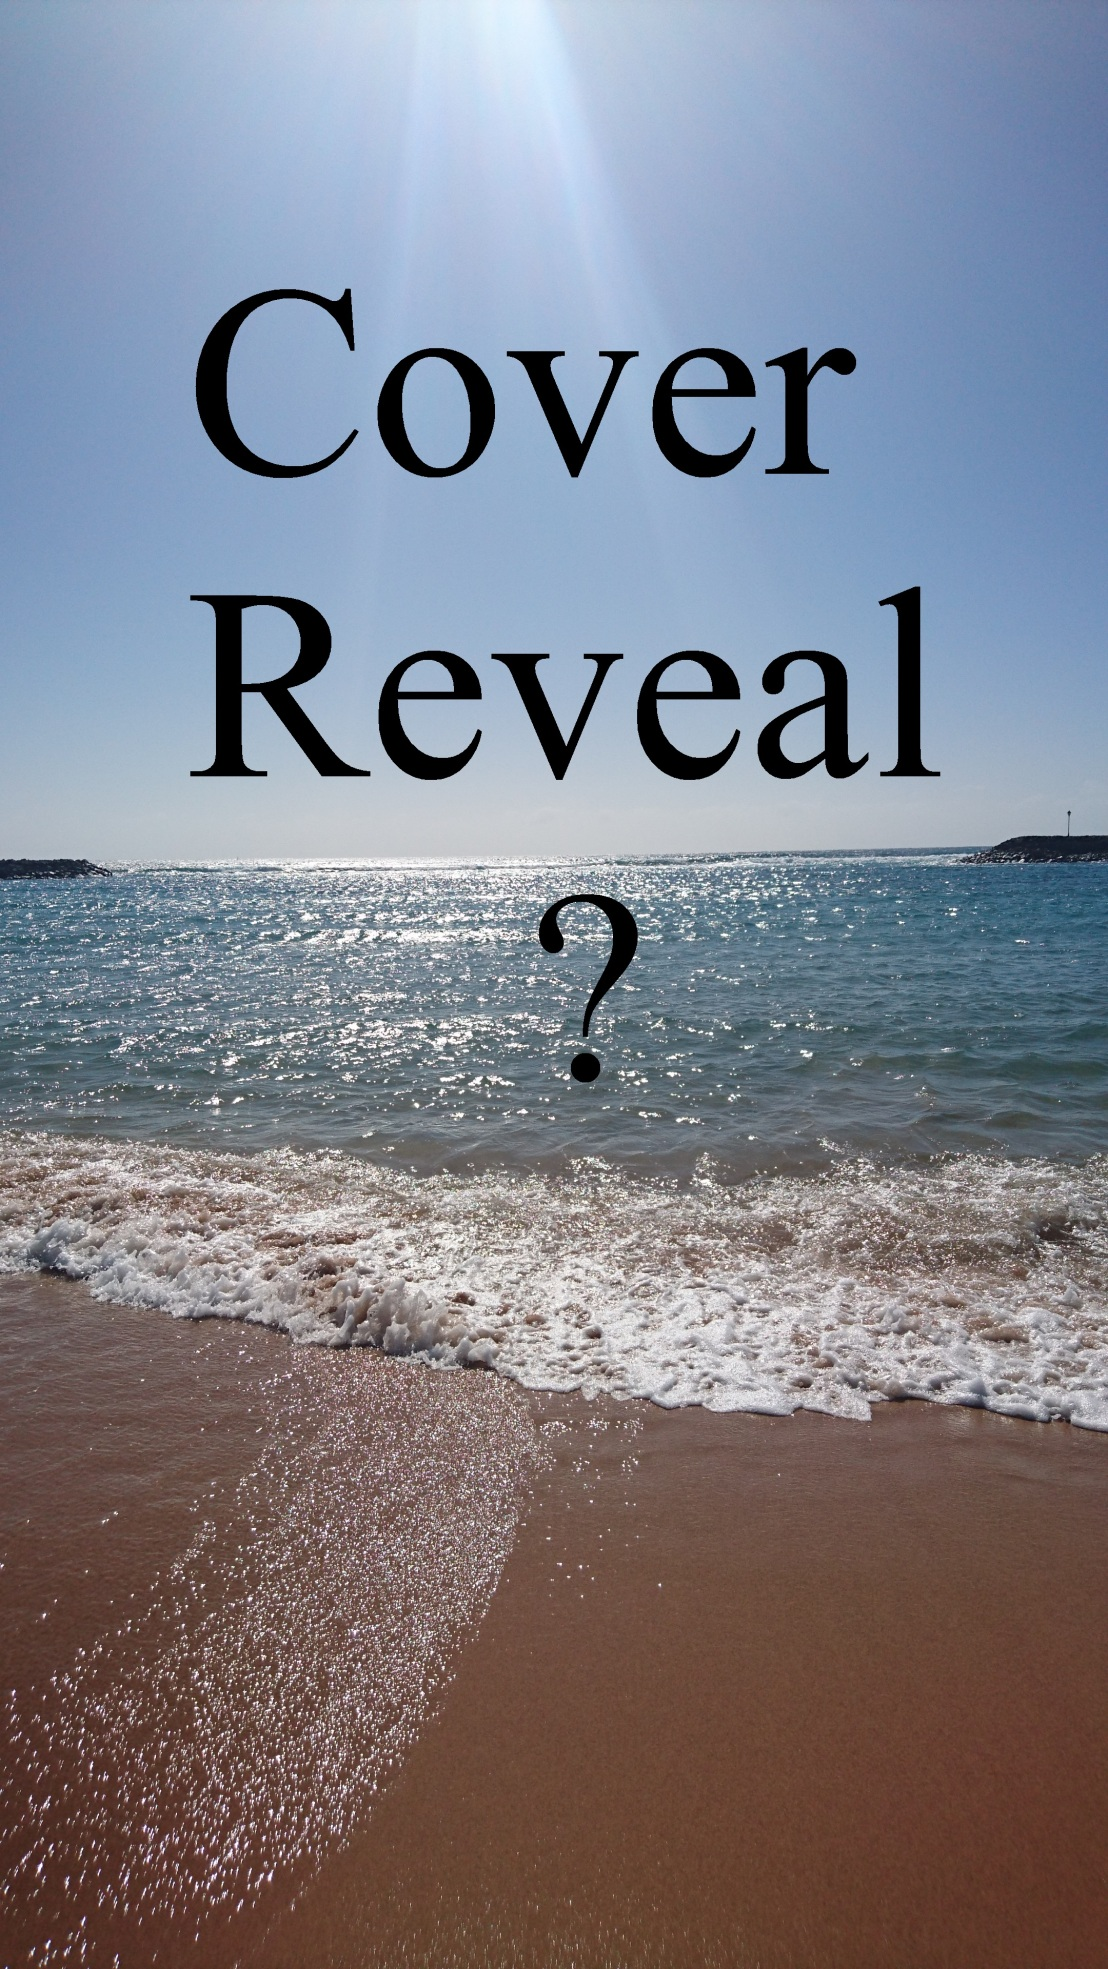 Cover Reveal – The Lost Sentinel  #fantasy #epicfantasy #heroicfantasy